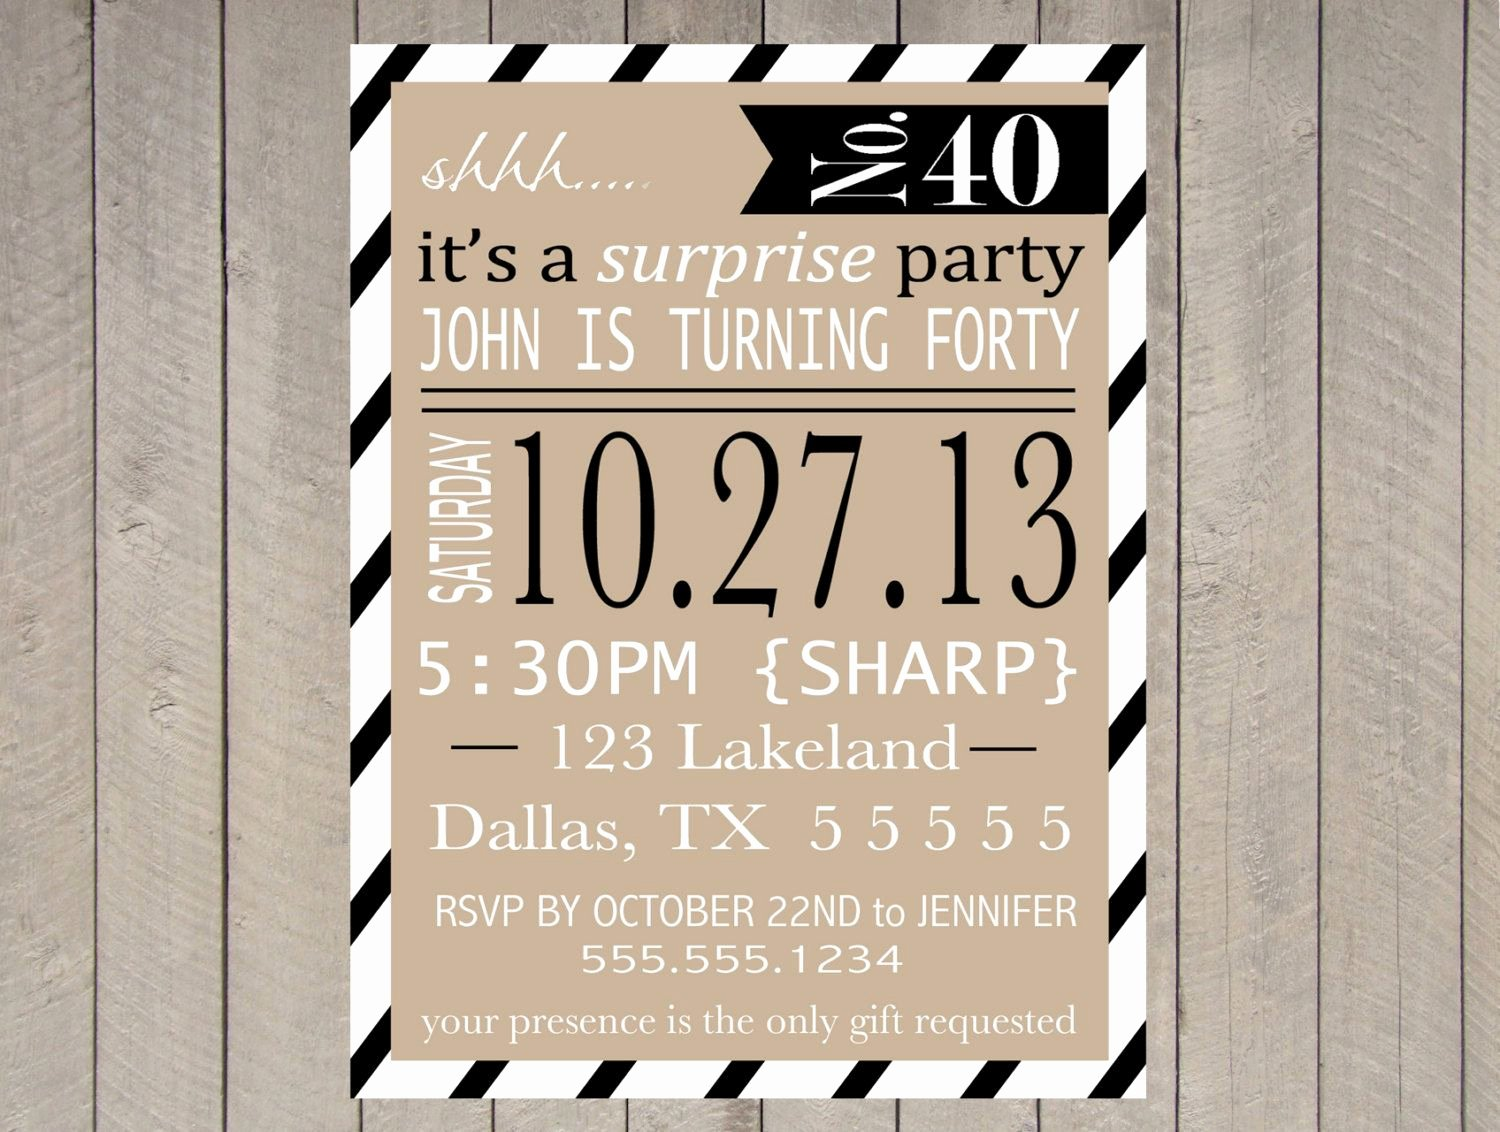 Surprise Party Invitation Templates Unique Adult Surprise Party Invitation Printable 40th Birthday 50th 60th Typography Vintage Stripe